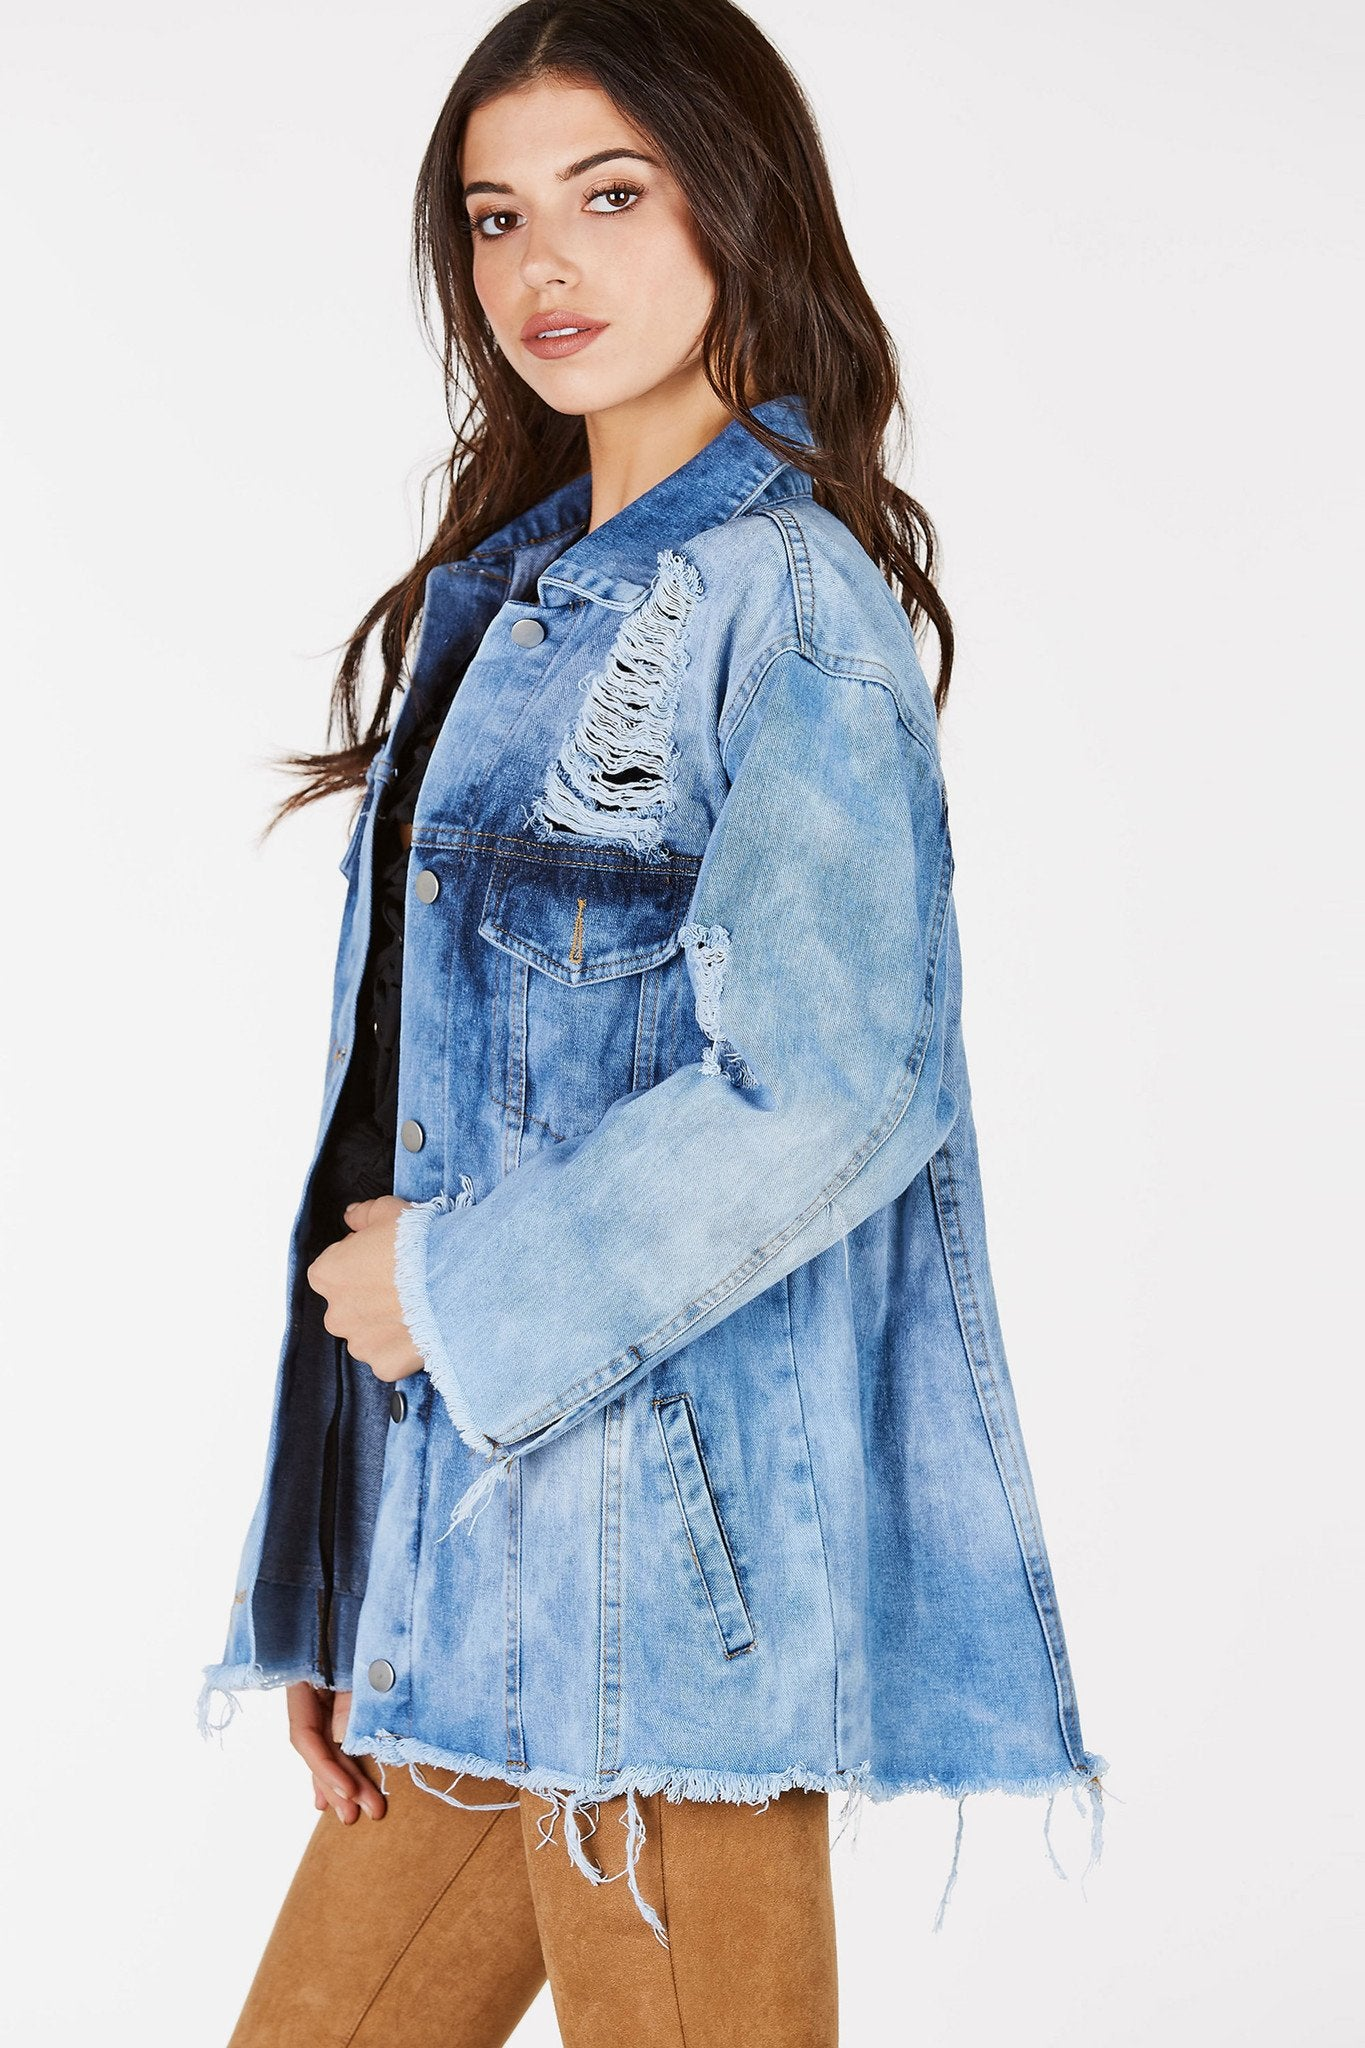 Lightwash, distressed denim jacket.  Frayed hems on bottom and sleeves for a worn look.